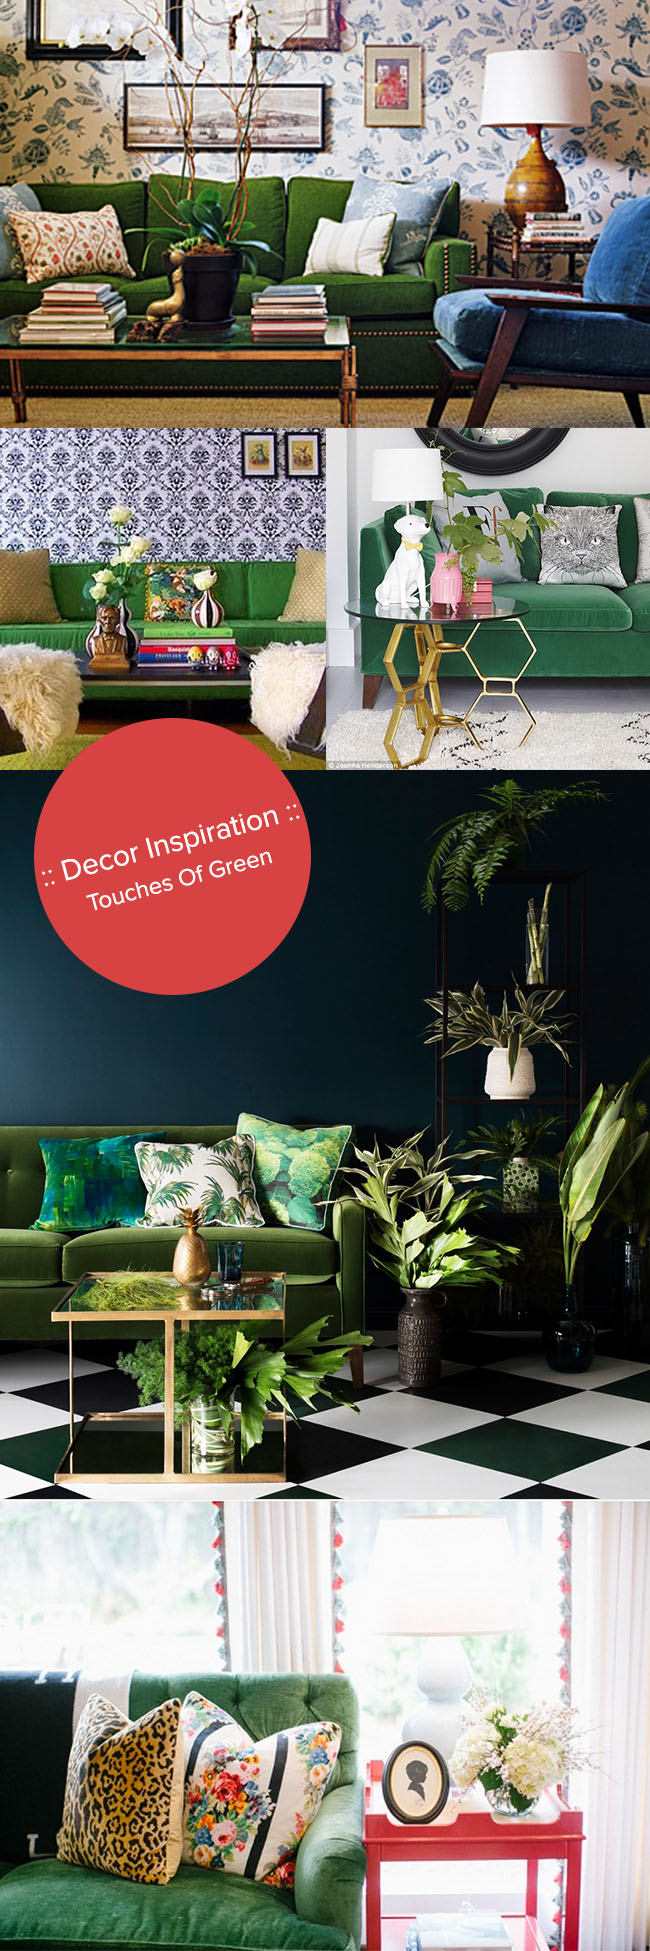 Decor Inspiration_Touches of Green in interior design